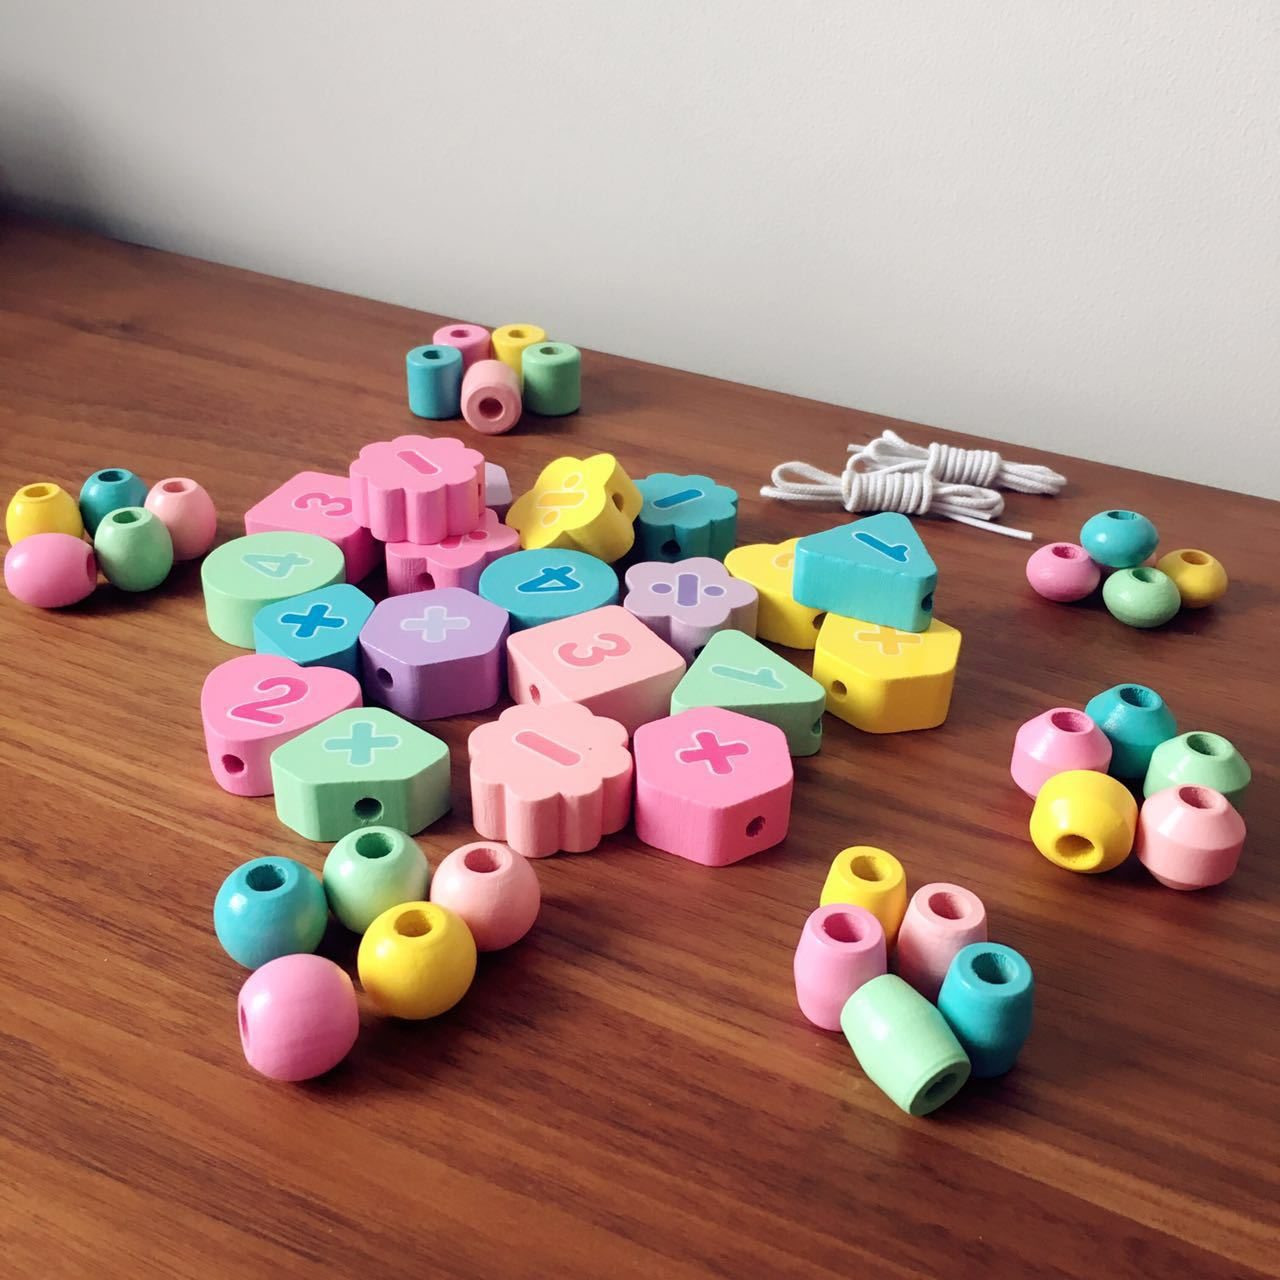 Macarons Chuan Zhu Toy Infant Threading Building Blocks Children Bead Baby Educational Toy 1-2 A Year Of Age 3-Year-Old